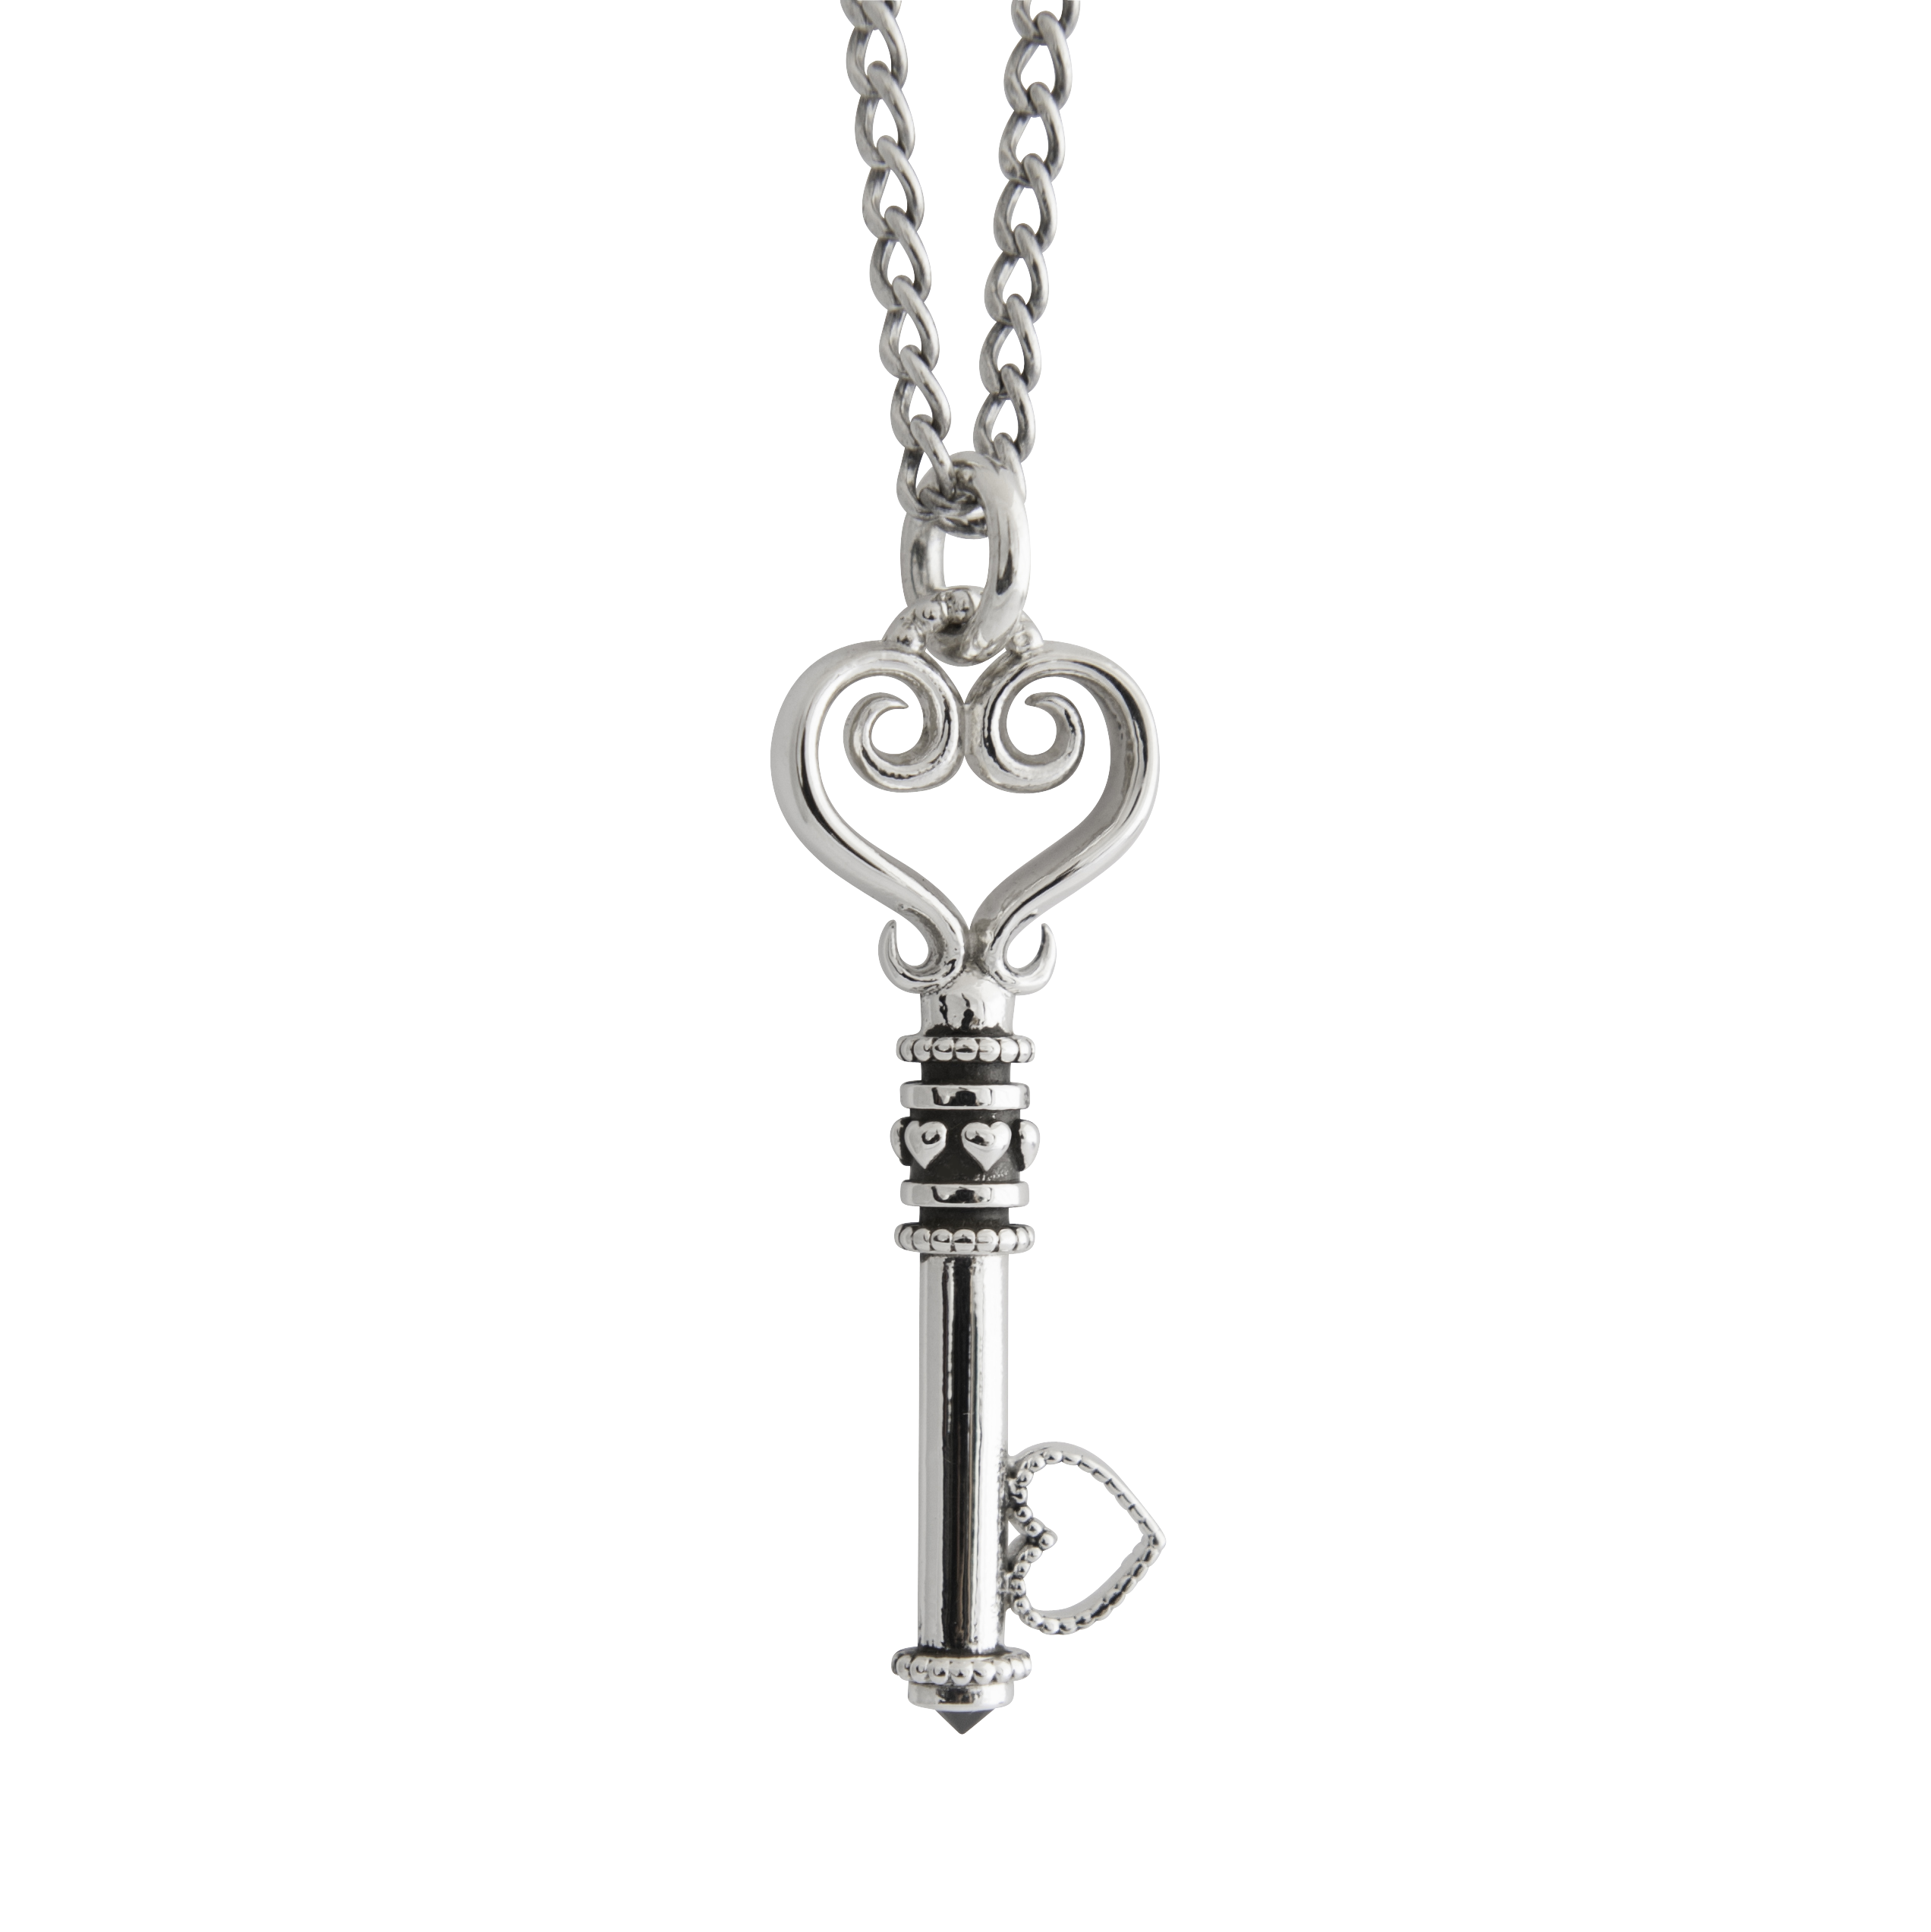 Keys on a ring png. Heart key pendant image